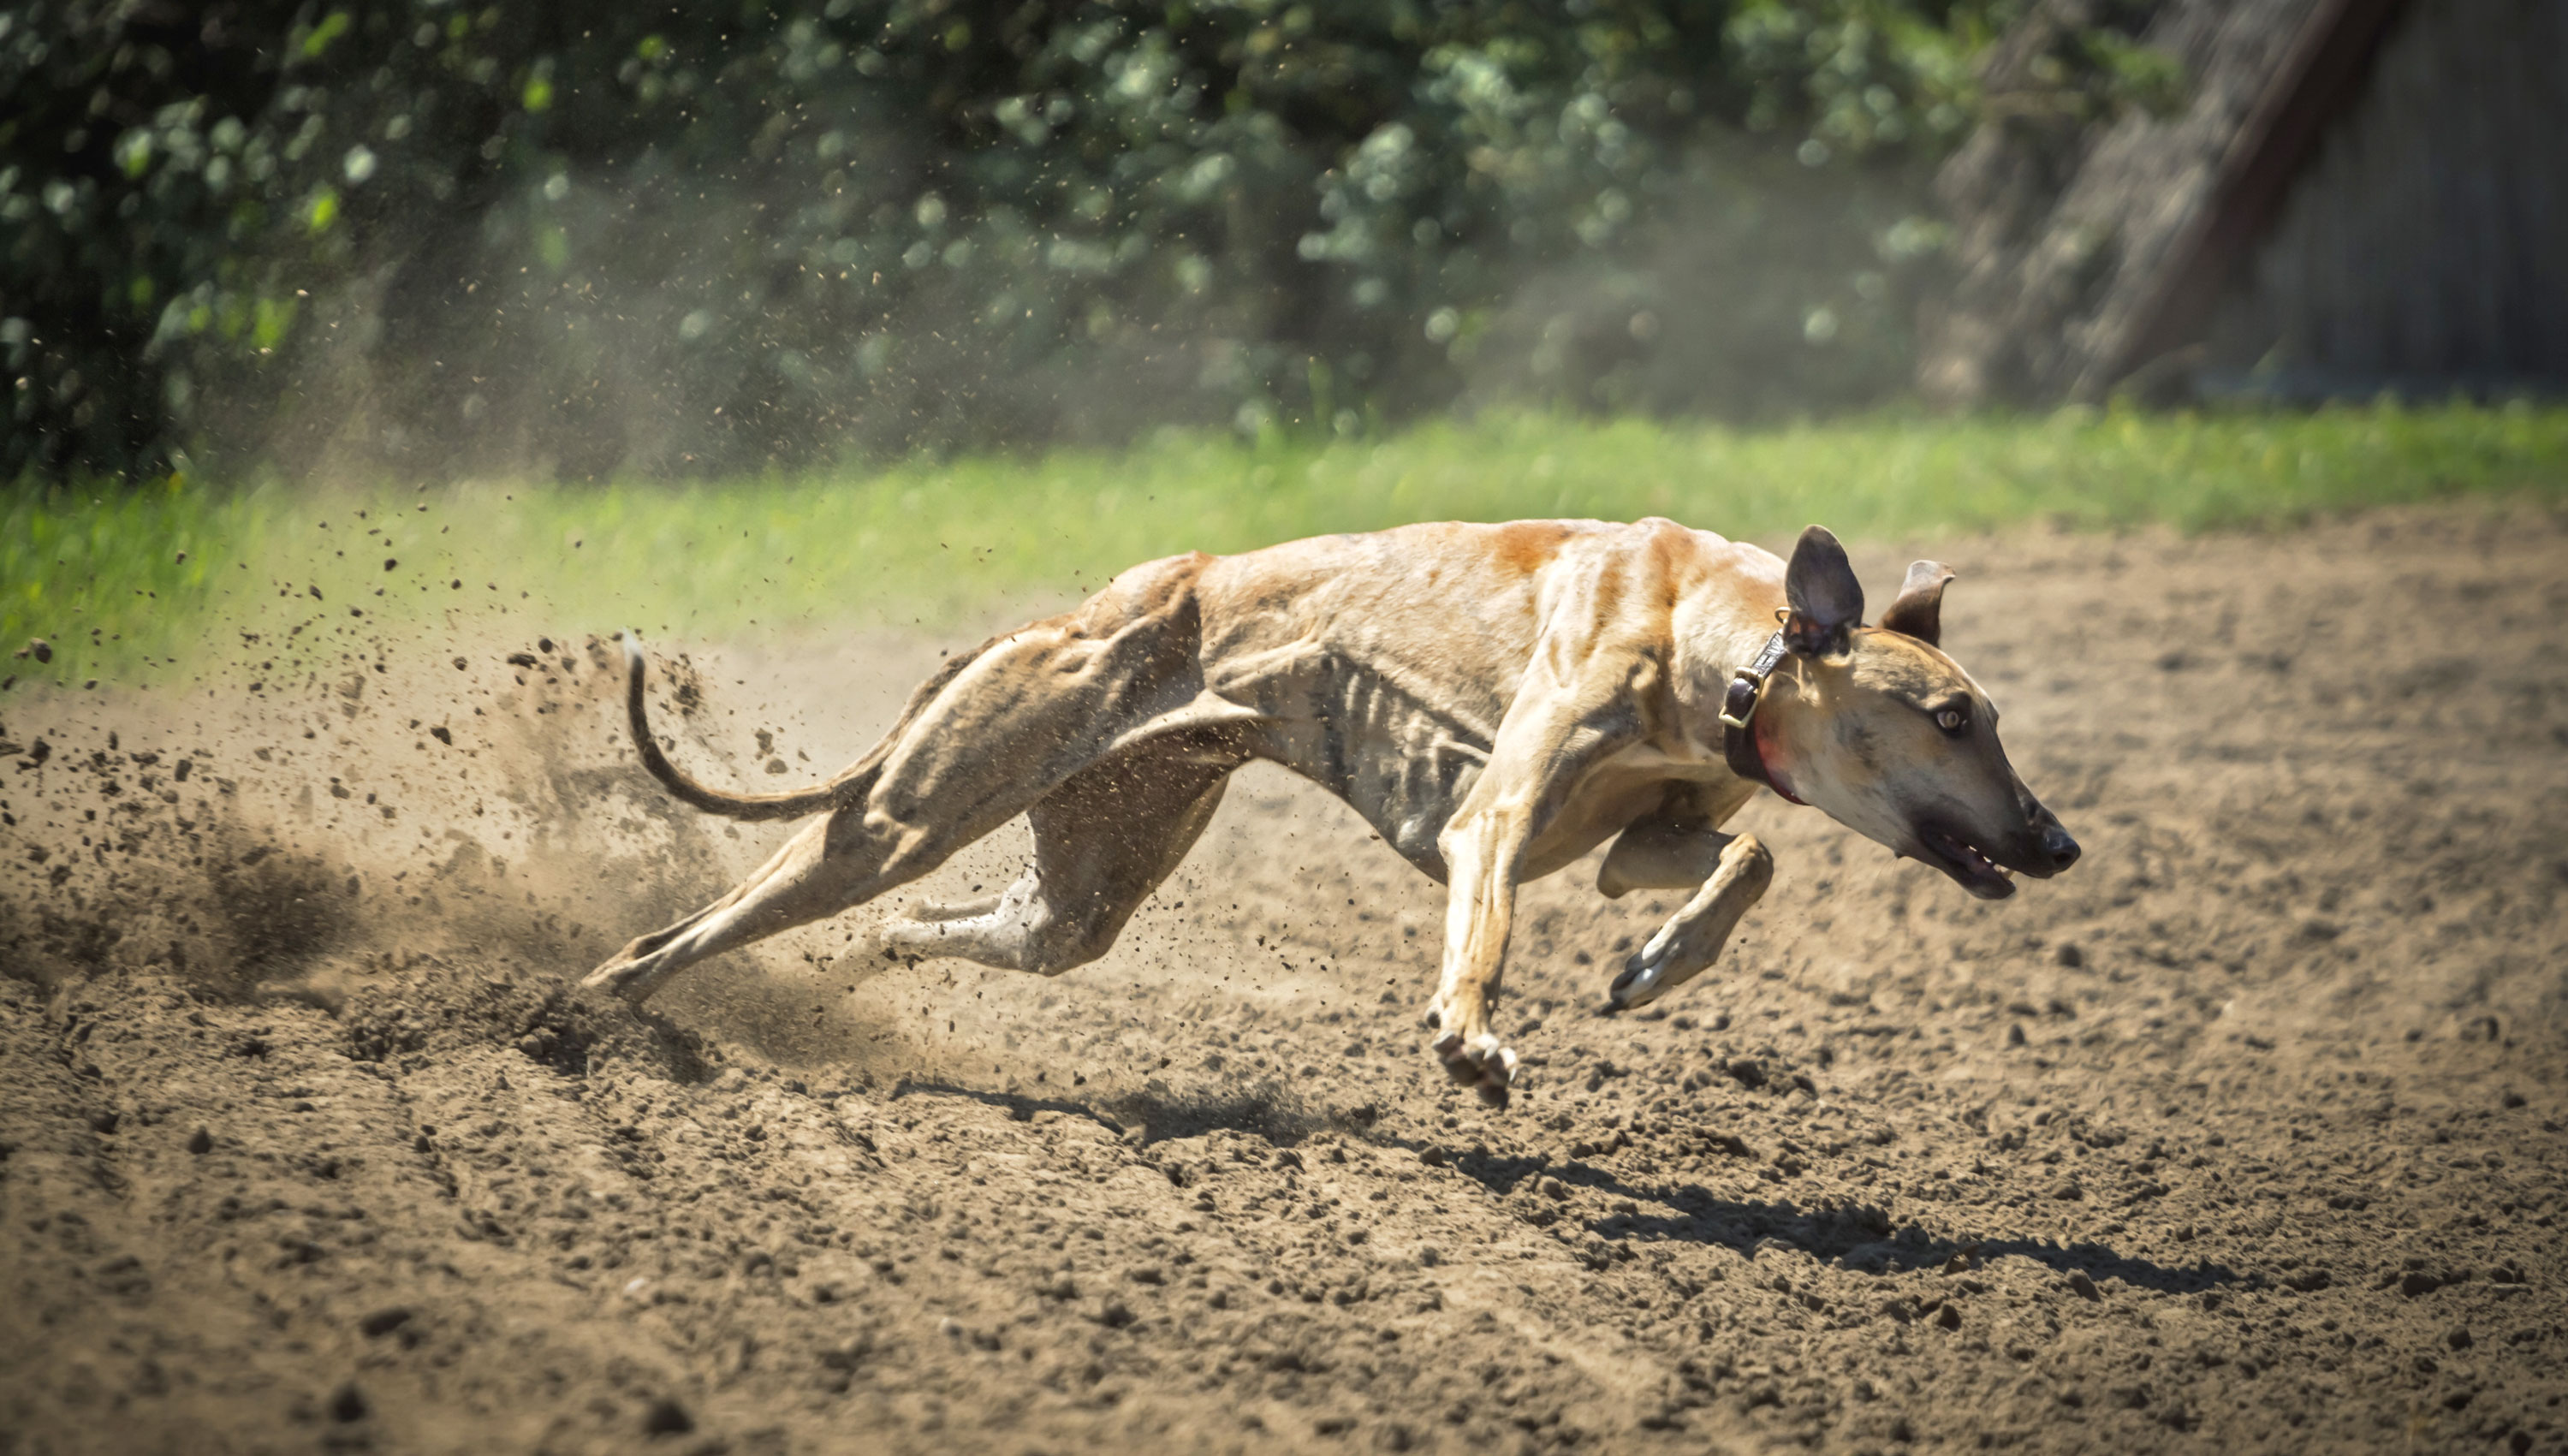 Stand with the greyhound six